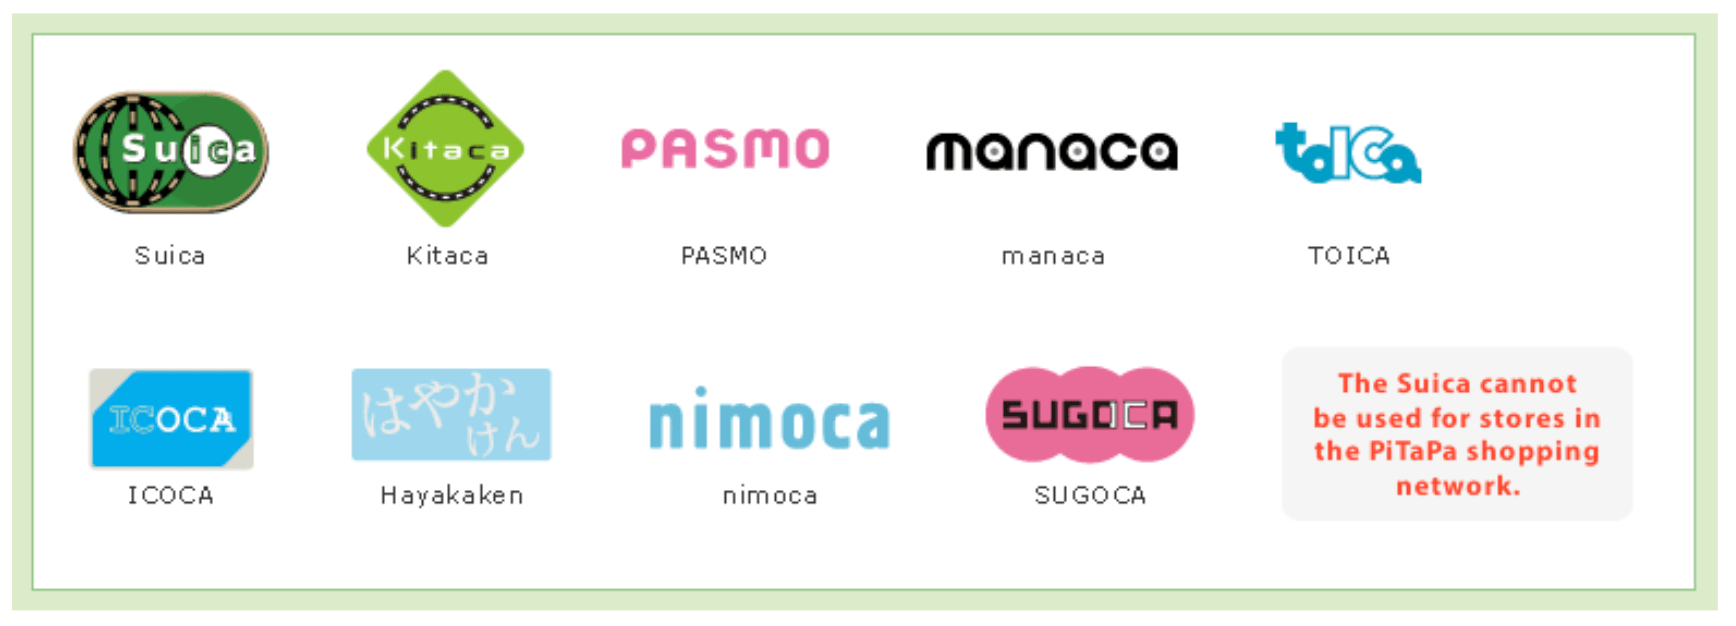 how-to-use-suica-pasmo-icoca.png